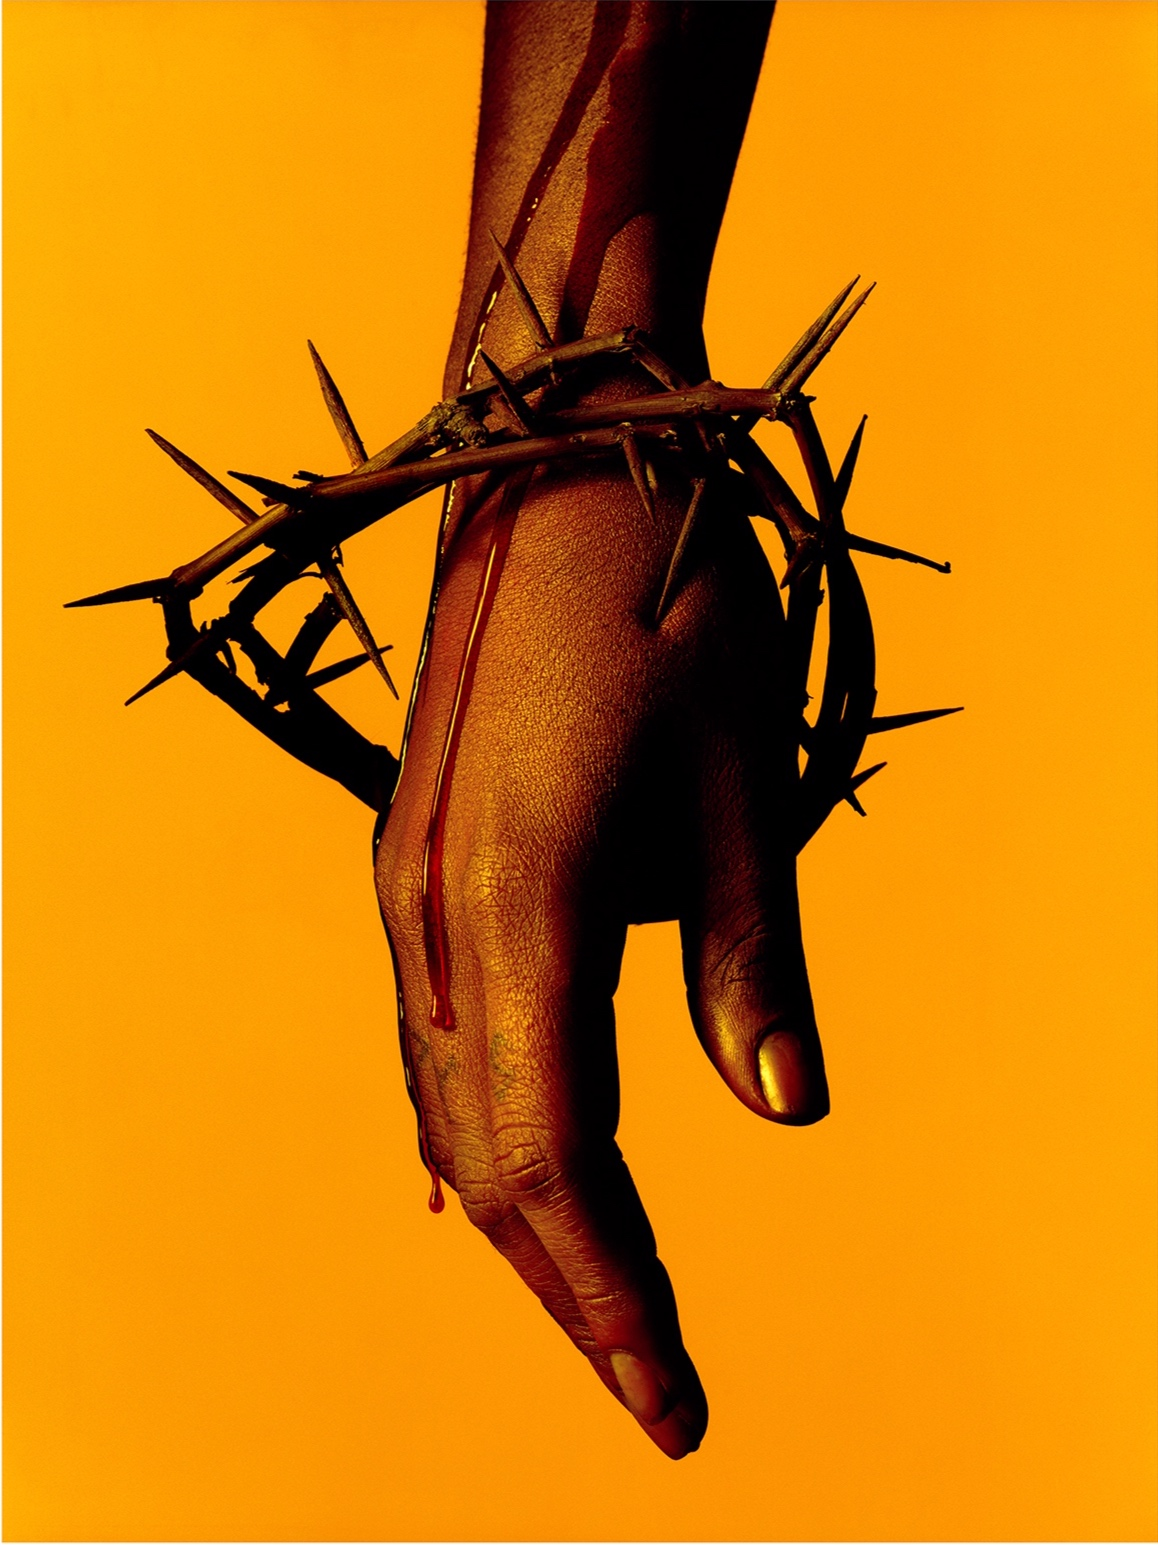 Omahyra by Albert Watson  Available in 3 sizes, Archival pigment print.  Price on request